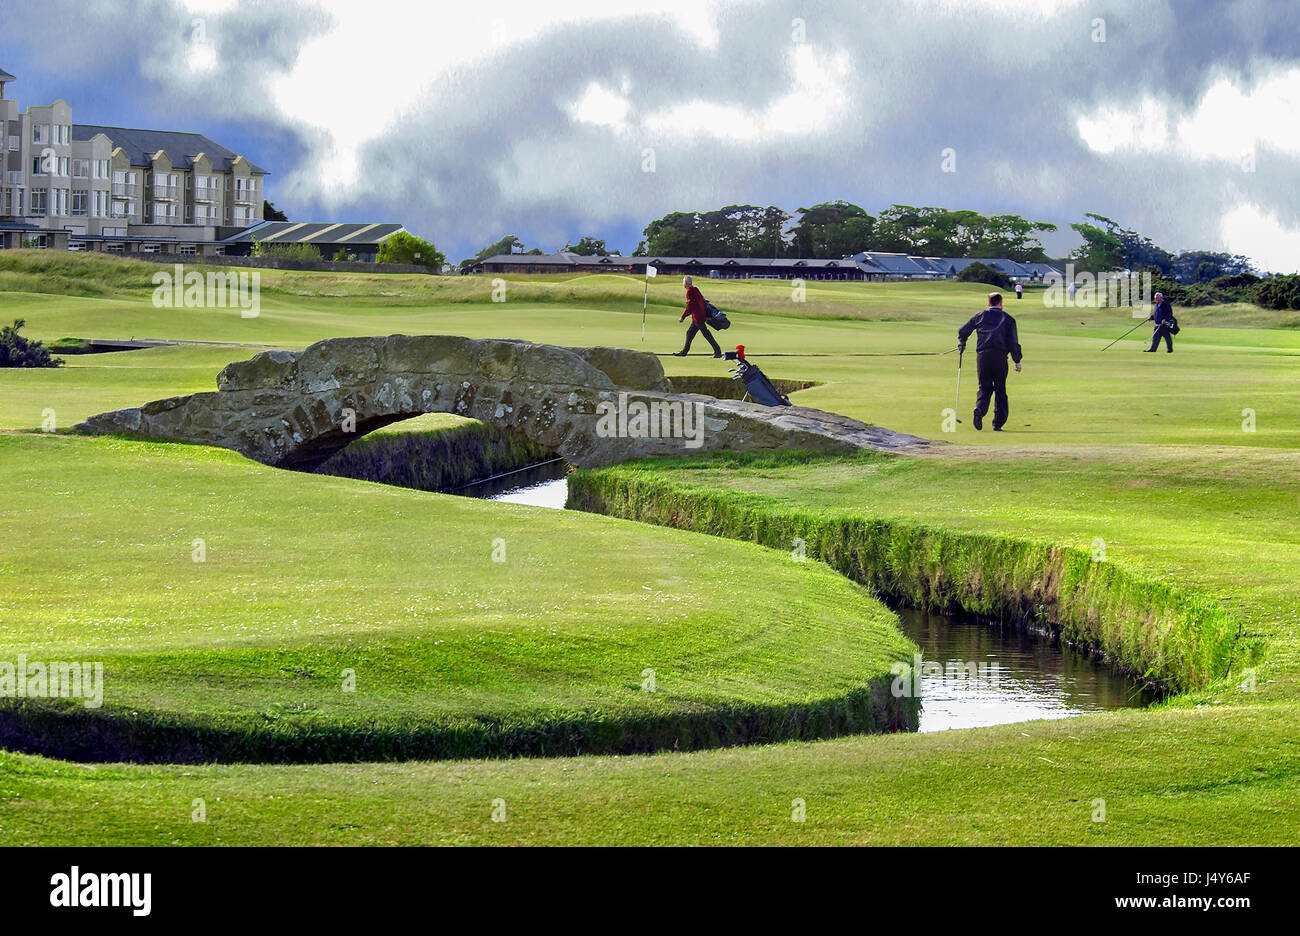 The Royal and Ancient old course at St. Andrews in Fife, Scotland. The home of golf. The bridge is the famous Swilkan - Stock Image